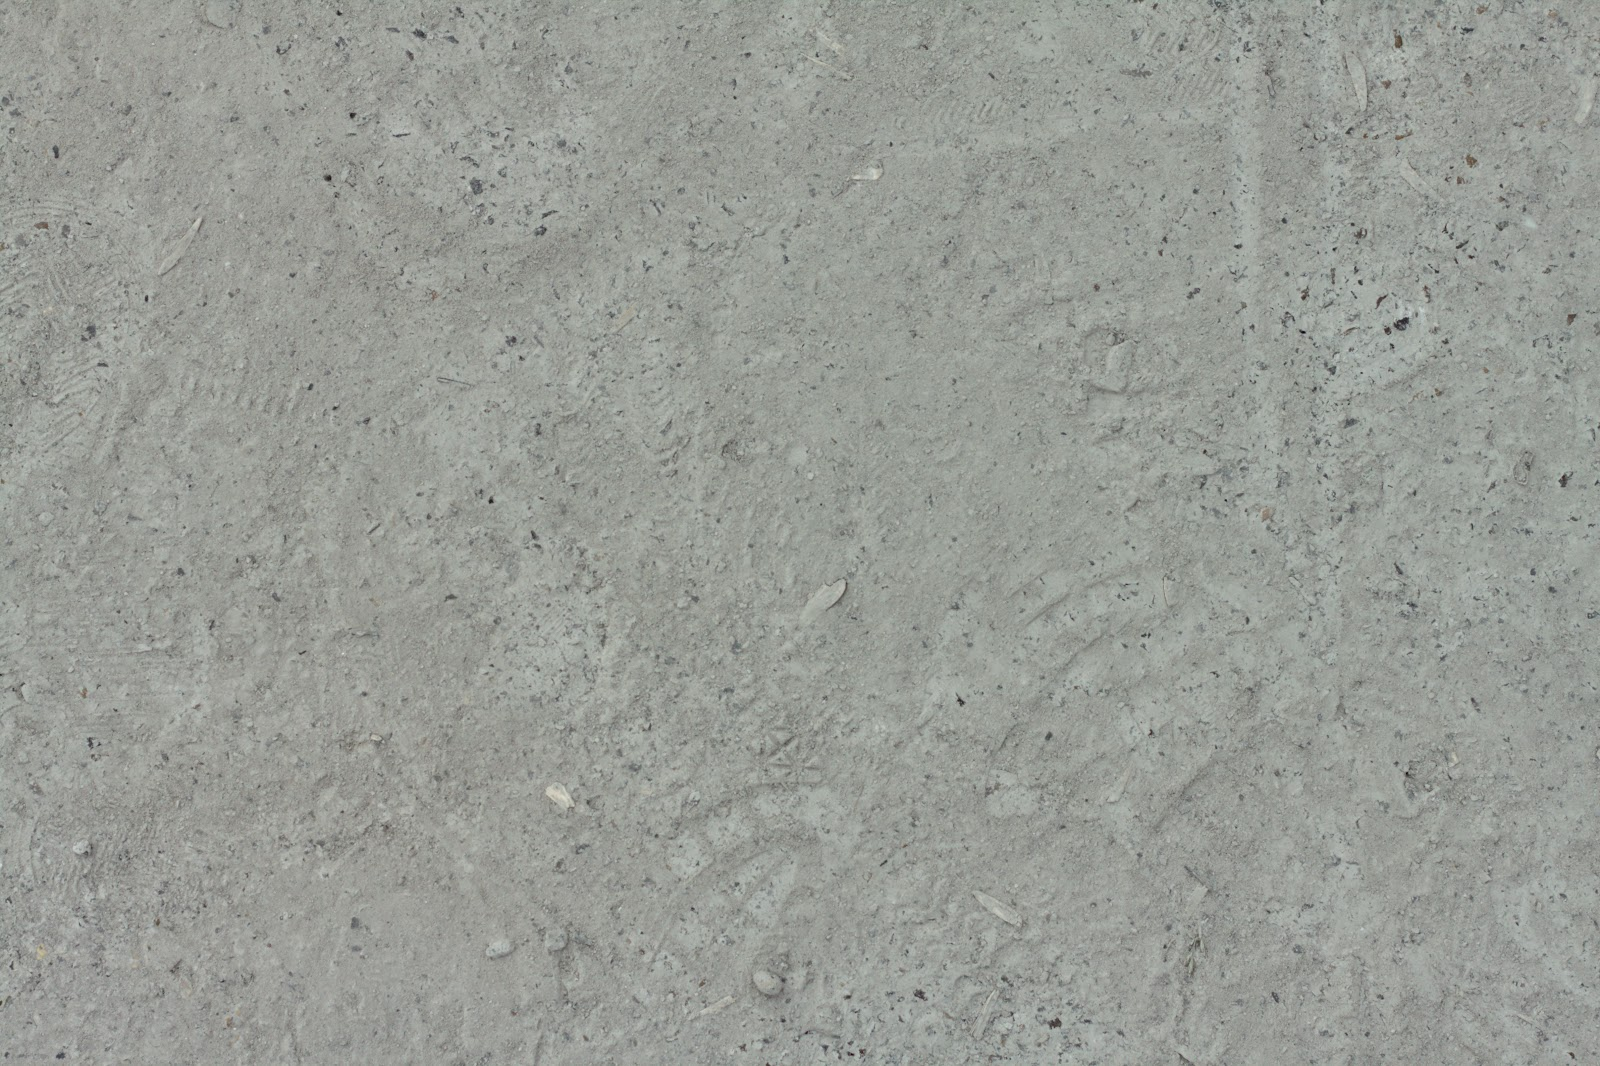 CONCRETE 18 Dusty Floor Granite Texture